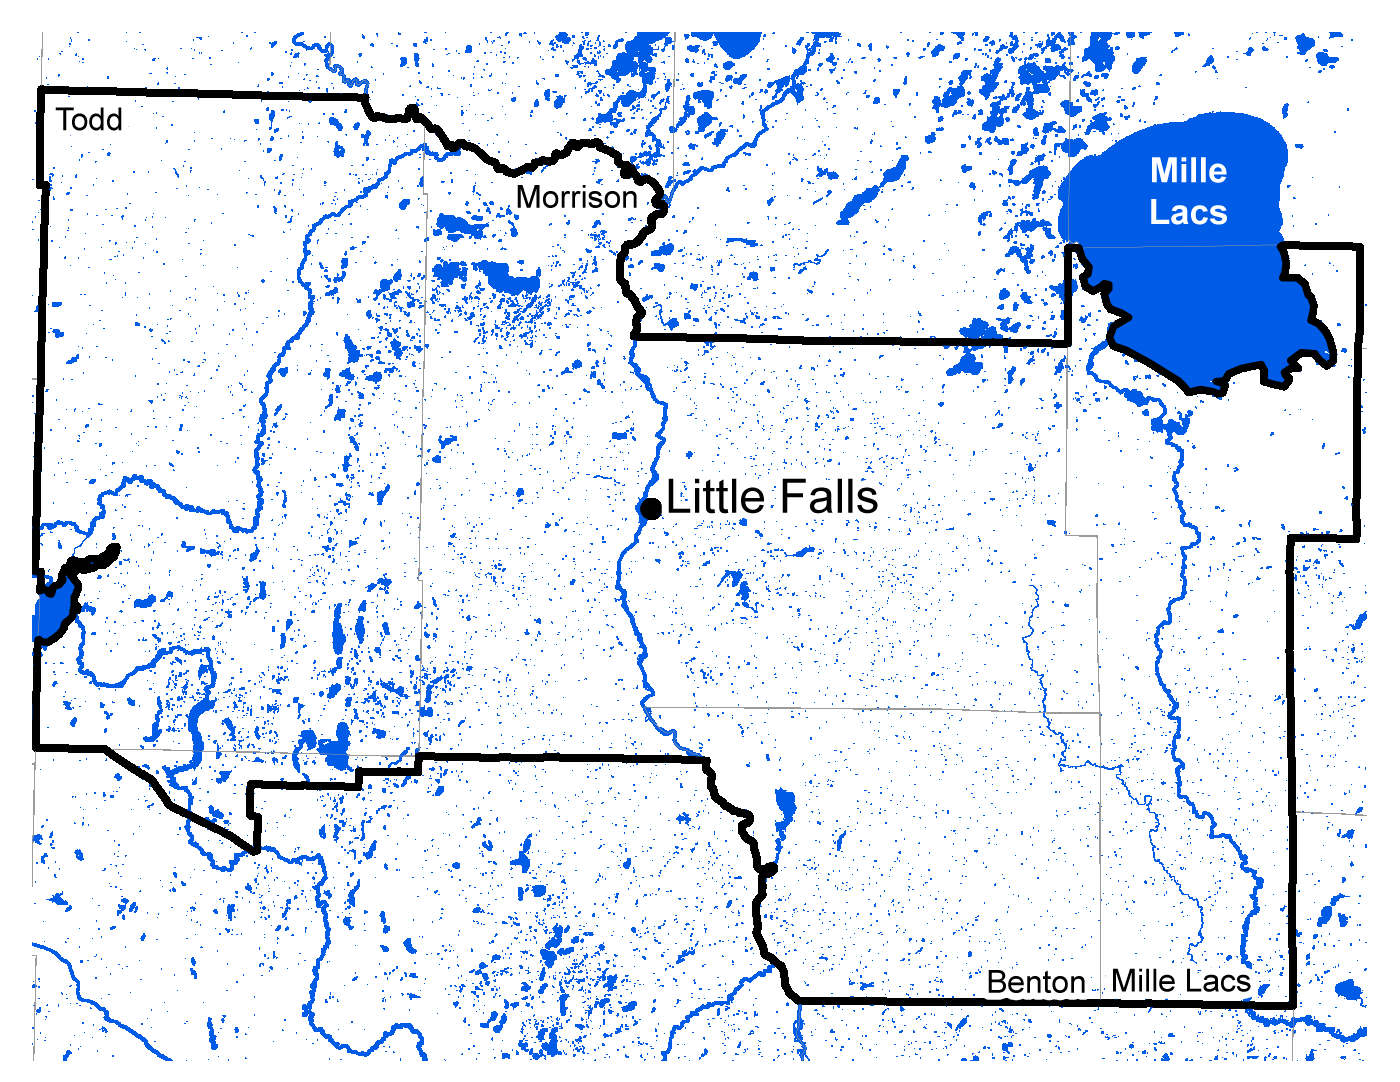 Map of Little Falls work area